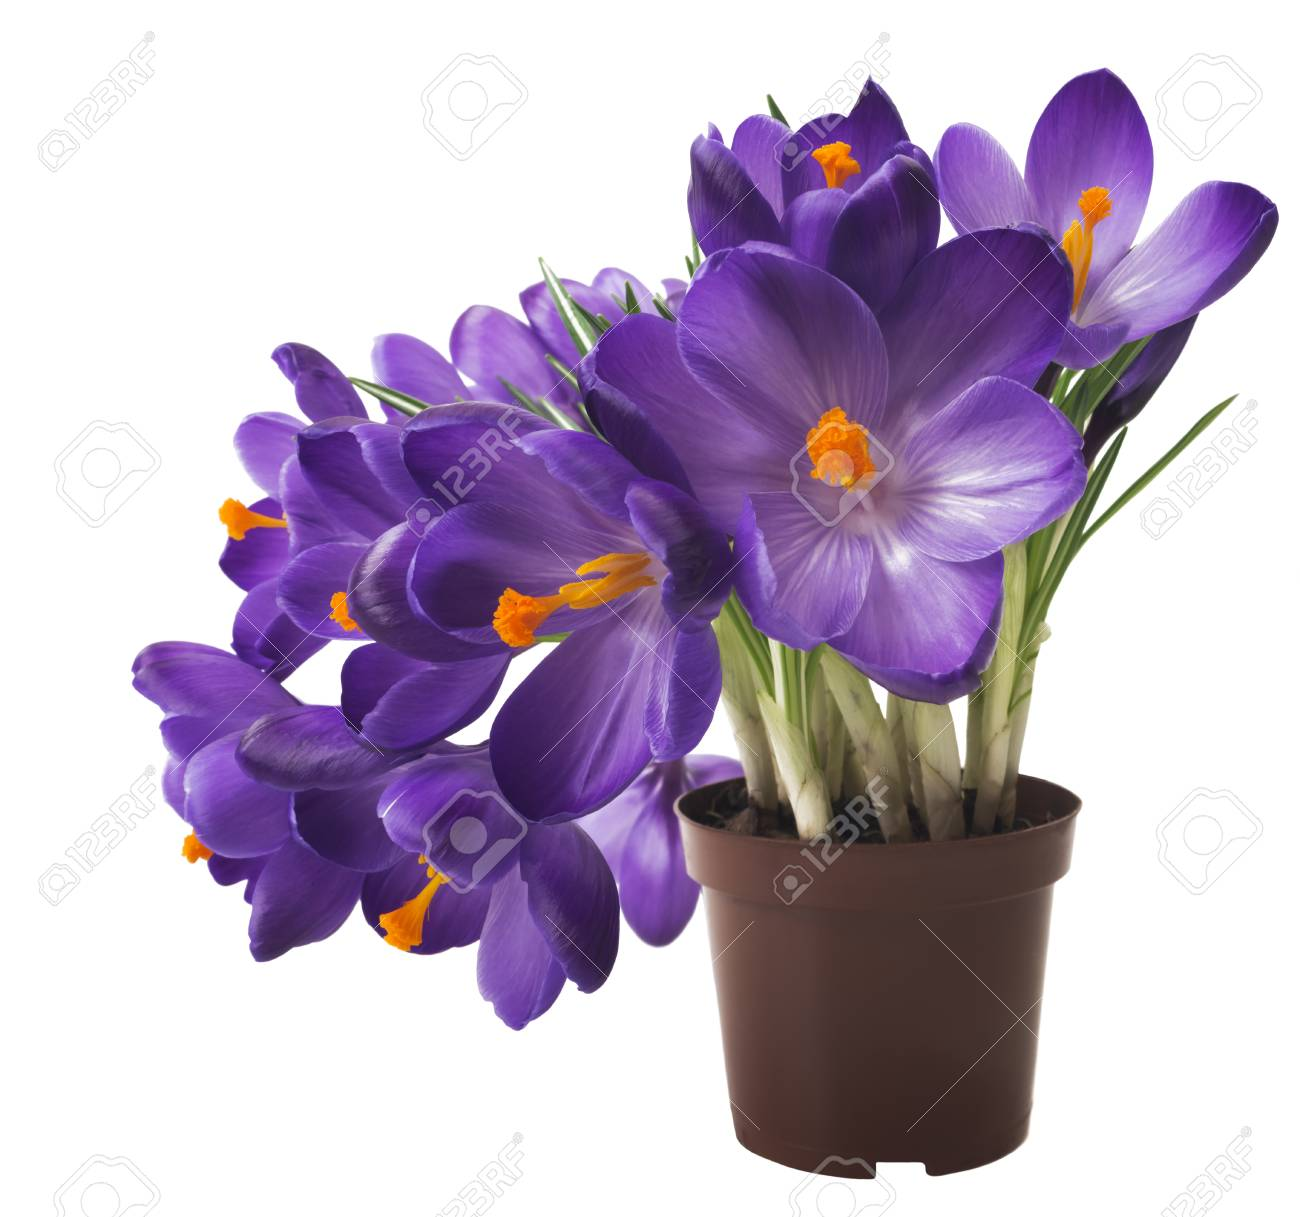 Beautiful crocus on white background fresh spring flowers stock beautiful crocus on white background fresh spring flowers violet crocus flowers bouquet mightylinksfo